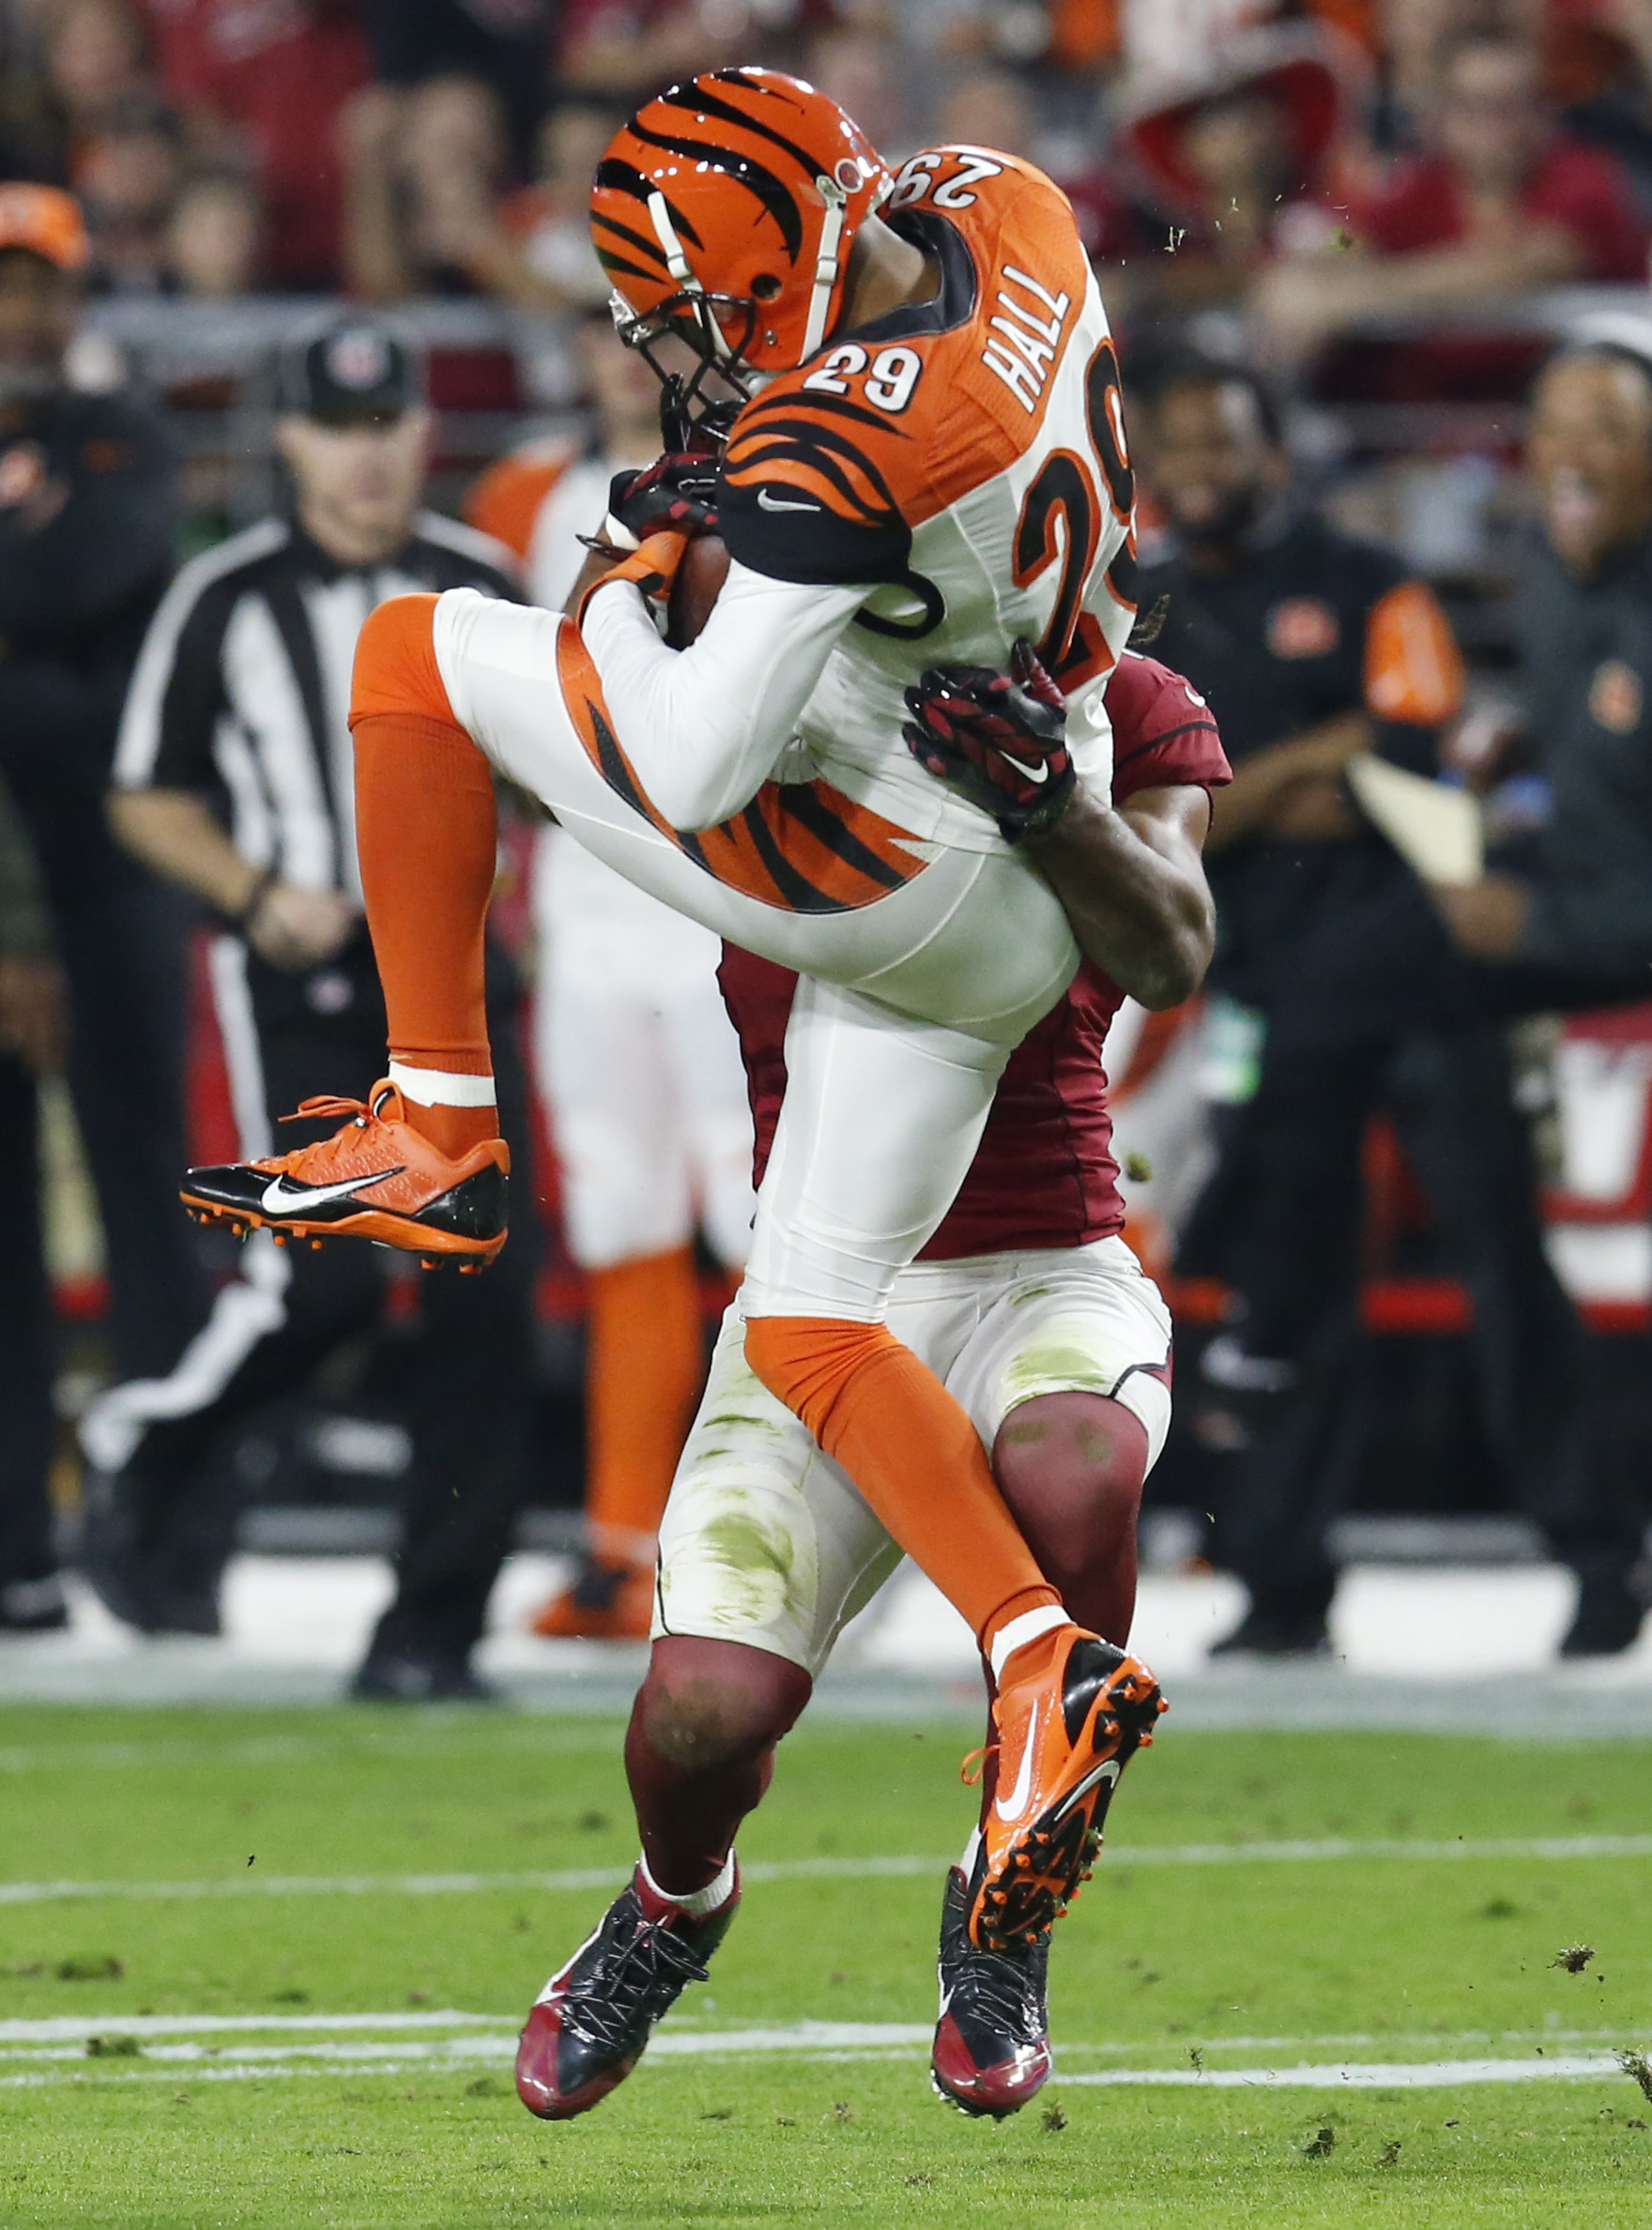 FILE - In this Nov. 22, 2015, file photo, Cincinnati Bengals strong safety Leon Hall (29) intercepts a pass intended for Arizona Cardinals wide receiver Larry Fitzgerald (11) during the first half of an NFL football game, in Glendale, Ariz. The New York G